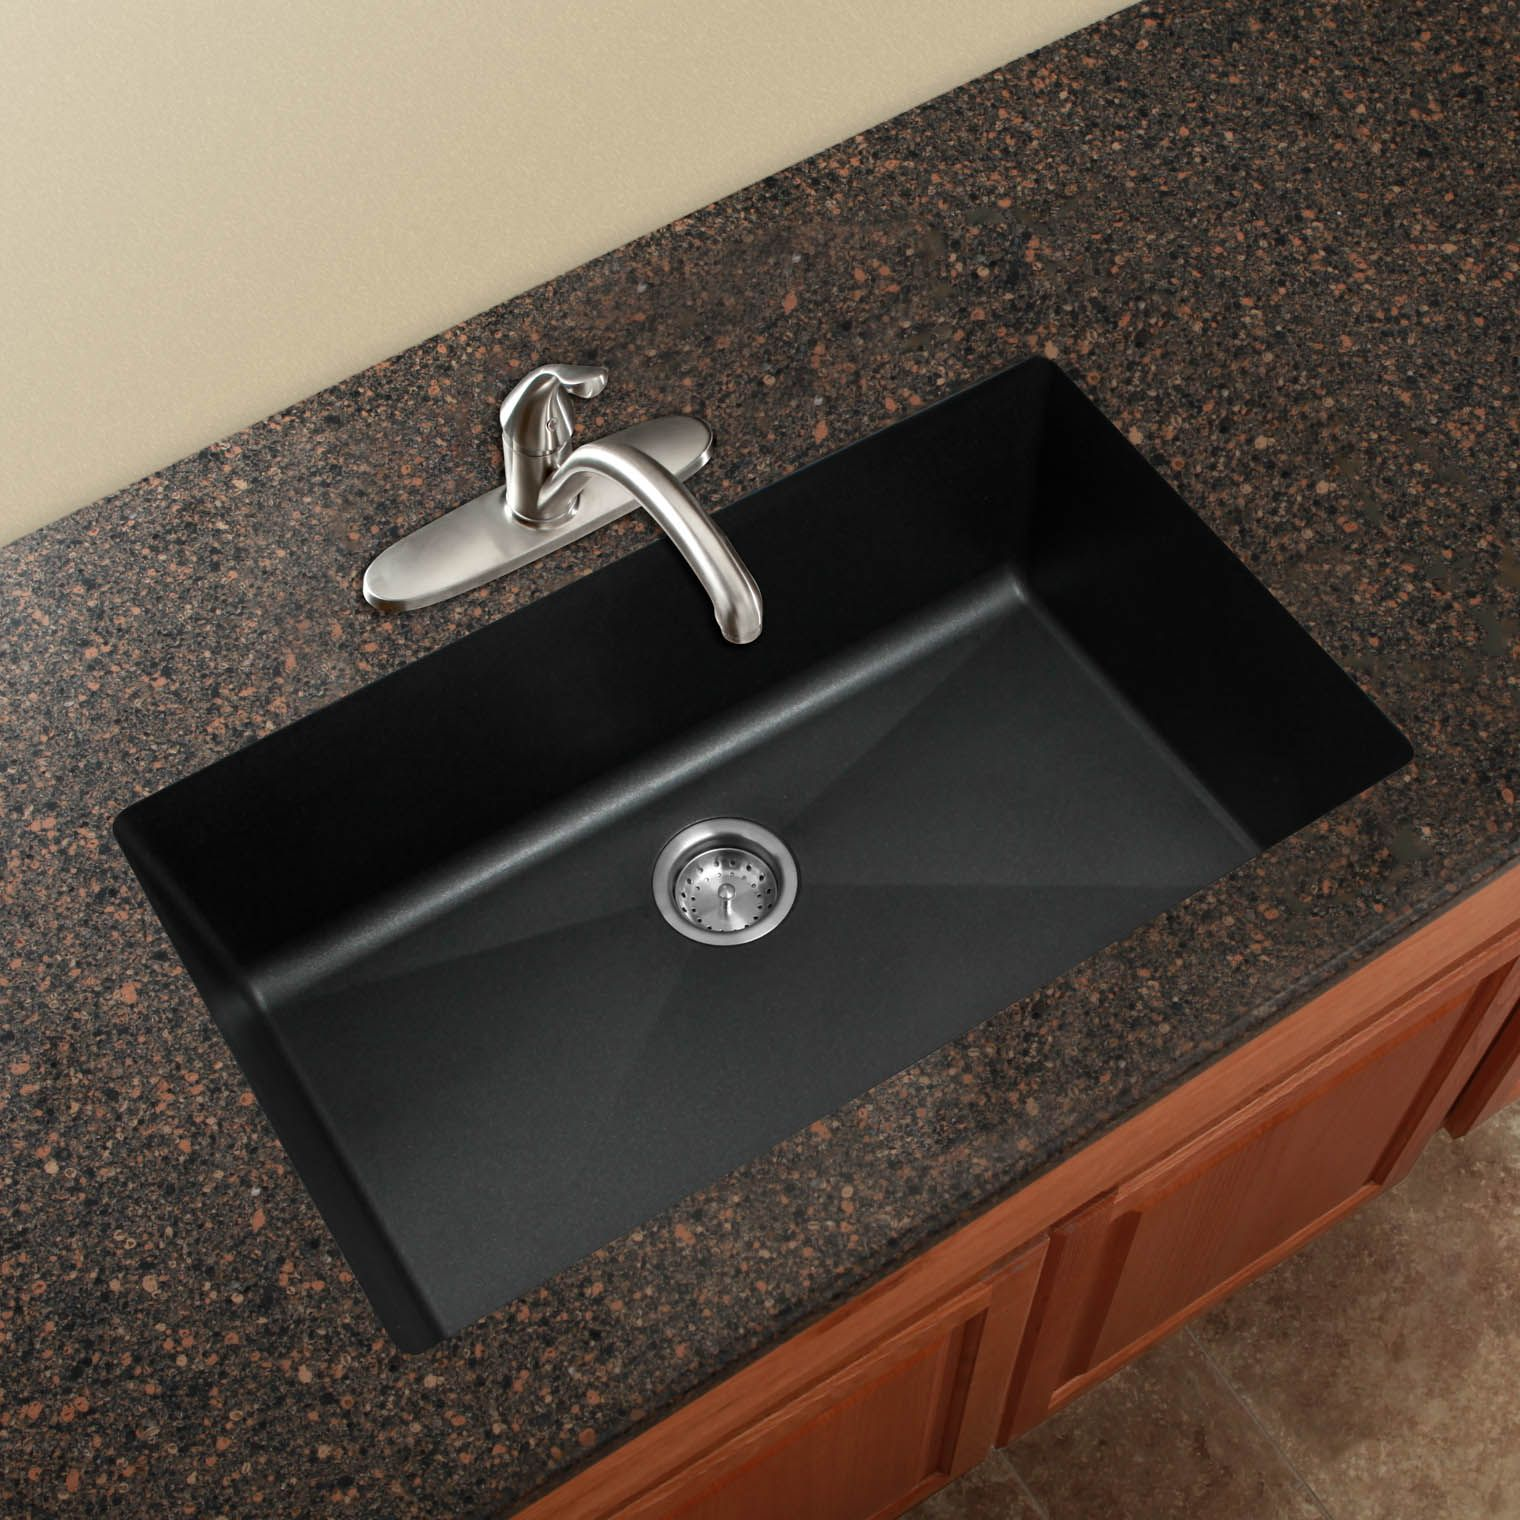 blanco undermount kitchen sinks glass front cabinets silgranit sink pictures google search